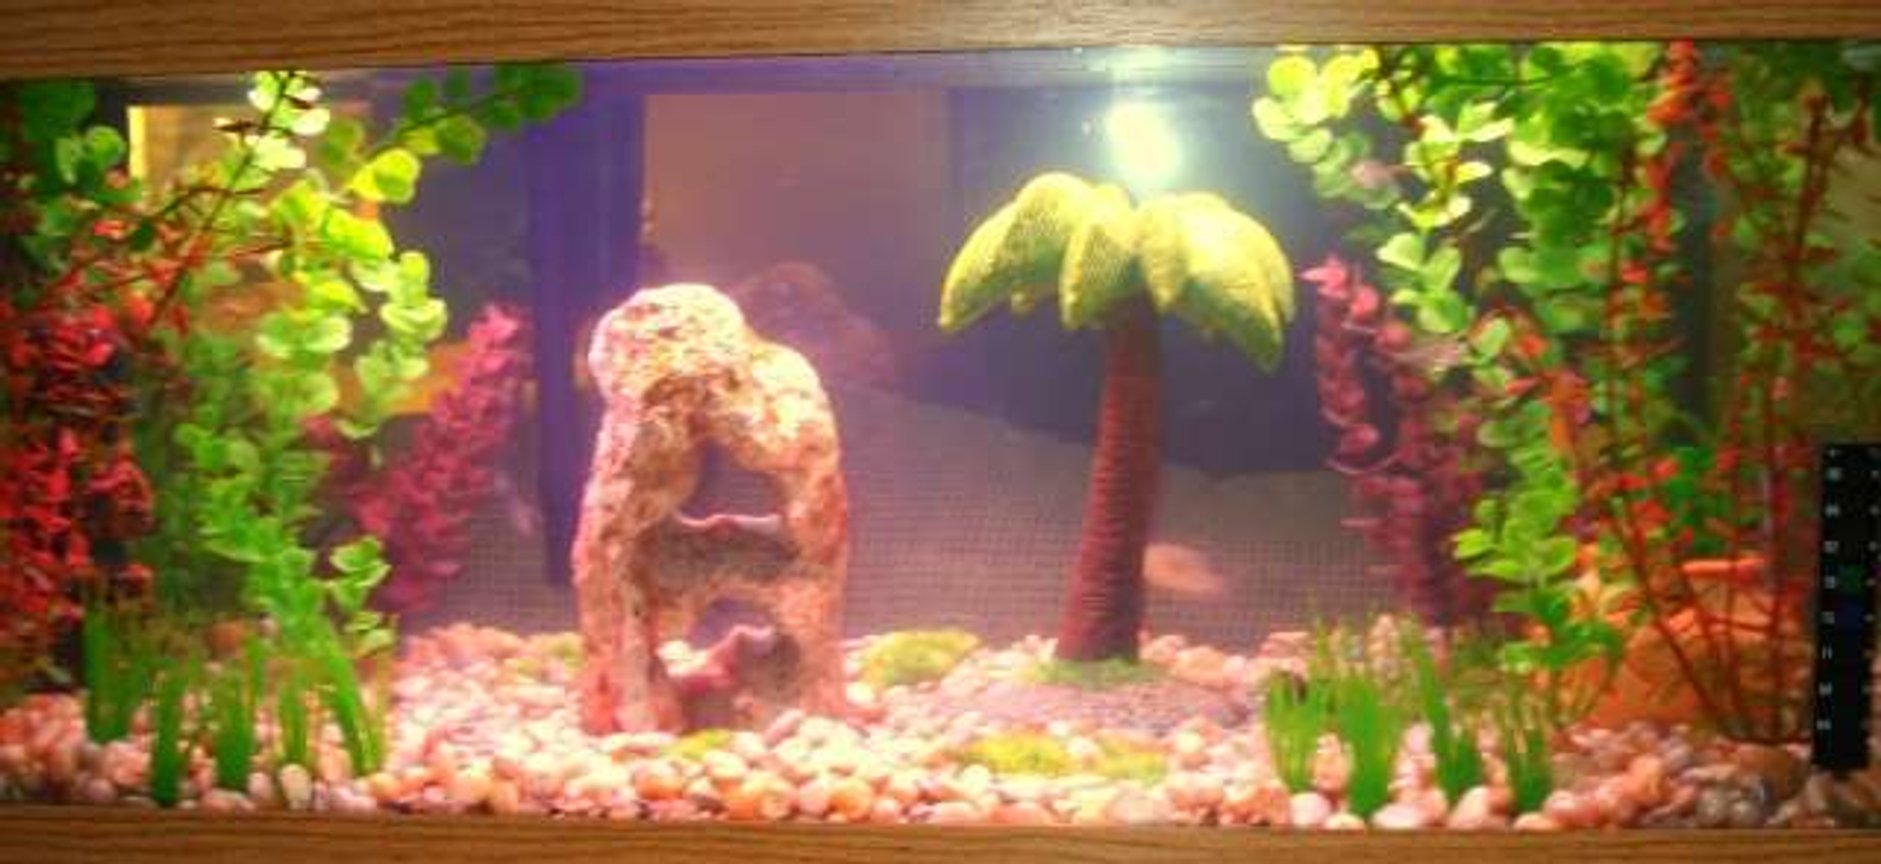 20 gallons freshwater fish tank (mostly fish and non-living decorations) - Fishies